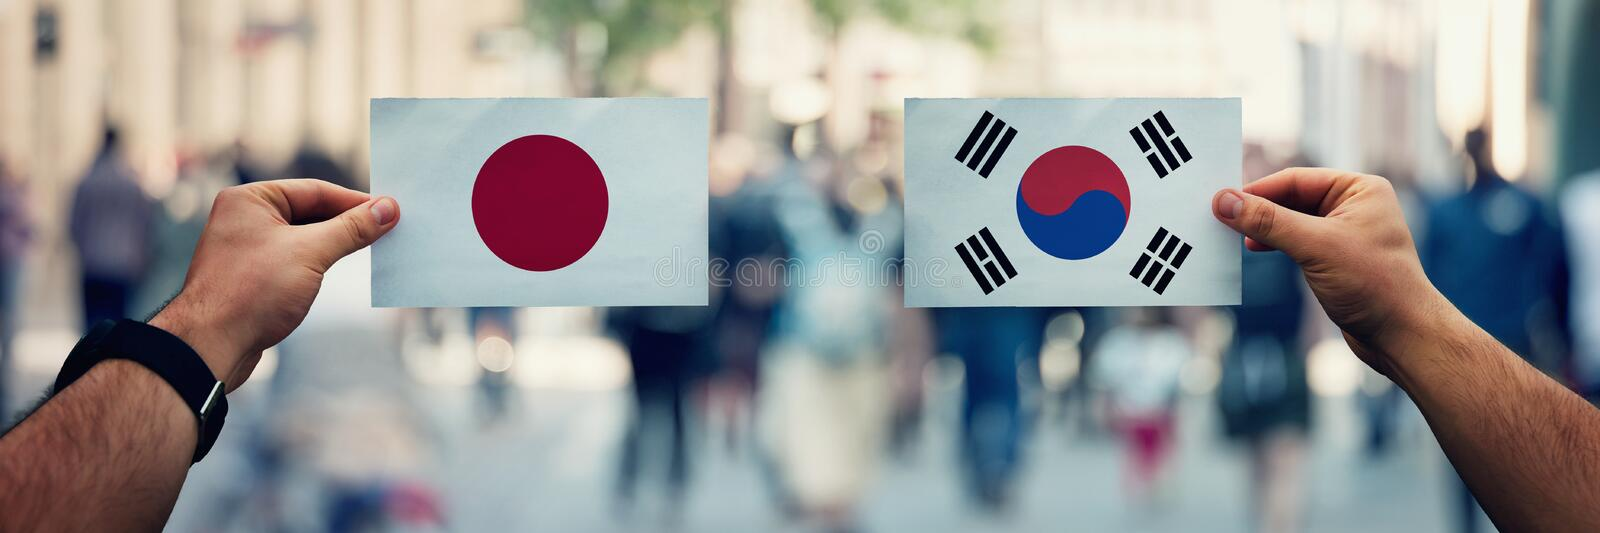 Hands holding Japan and South Korea flags as trade dispute on politics arena, overcrowded street. Diplomacy and future strategy,. Relations between countries royalty free stock image